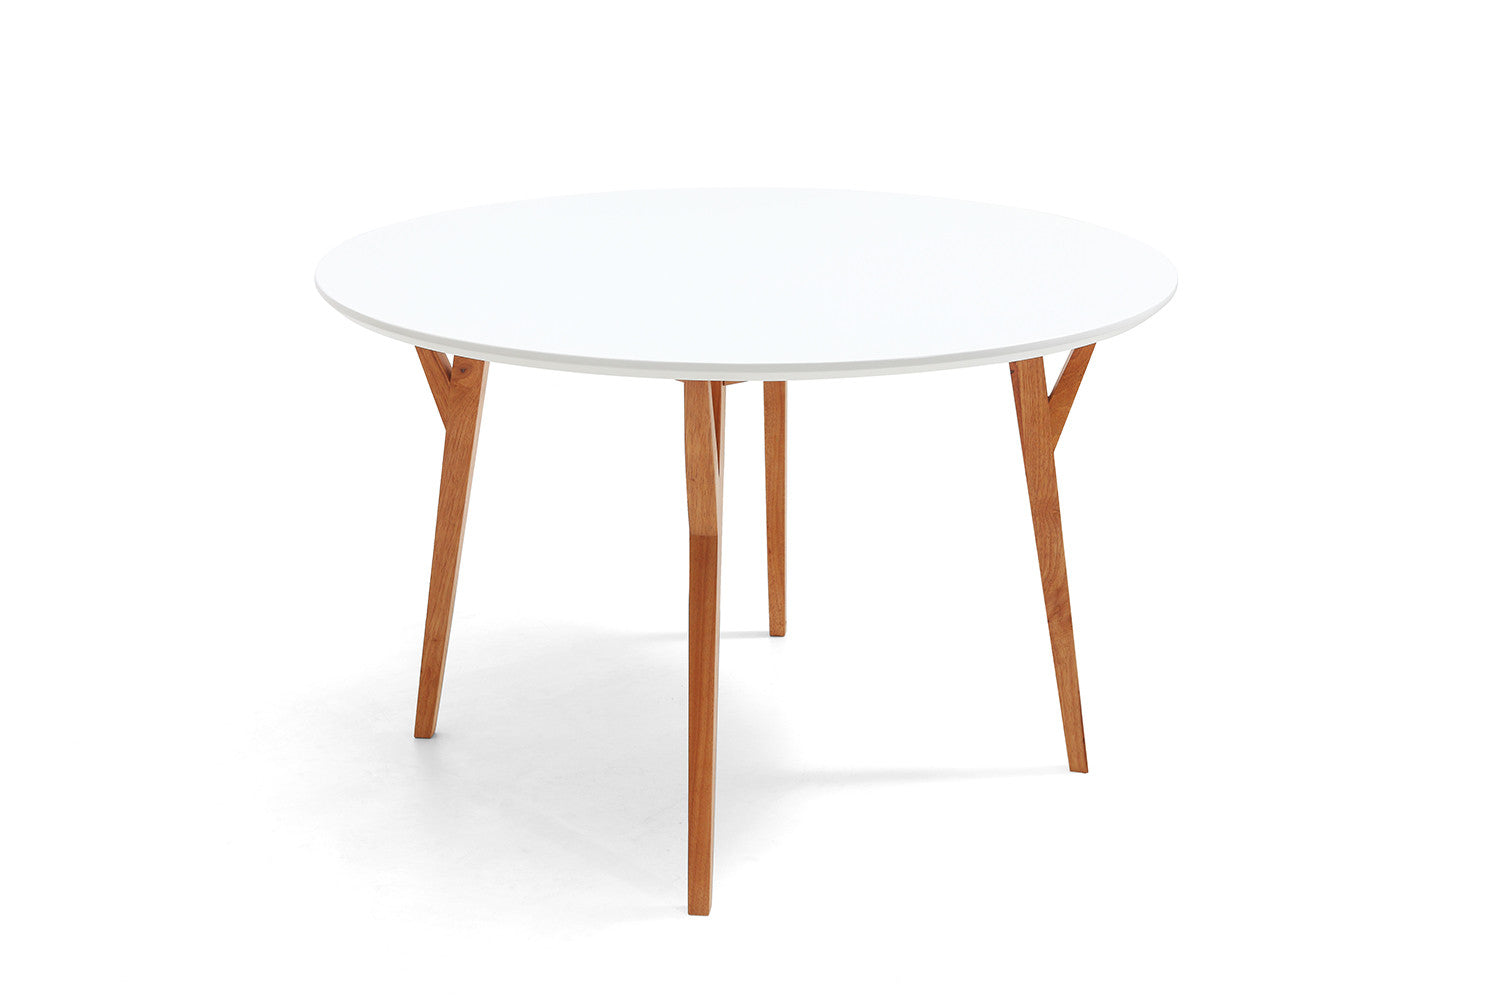 Table de salle manger ronde design scandinave moesa for Decoration table de manger